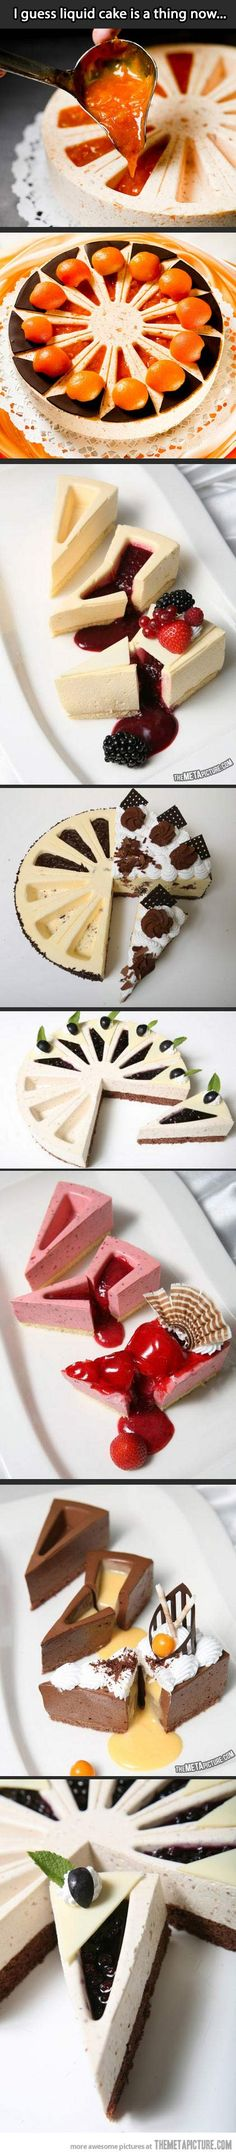 I'd eat it. I'd eat it. I'm thinking plain cheesecake with liquid strawberry :DLiquid cake? I'd eat it. I'm thinking plain cheesecake with liquid strawberry :D Food Cakes, Cupcake Cakes, Cupcakes, Just Desserts, Delicious Desserts, Yummy Food, Baking Desserts, Yummy Yummy, Sweet Recipes